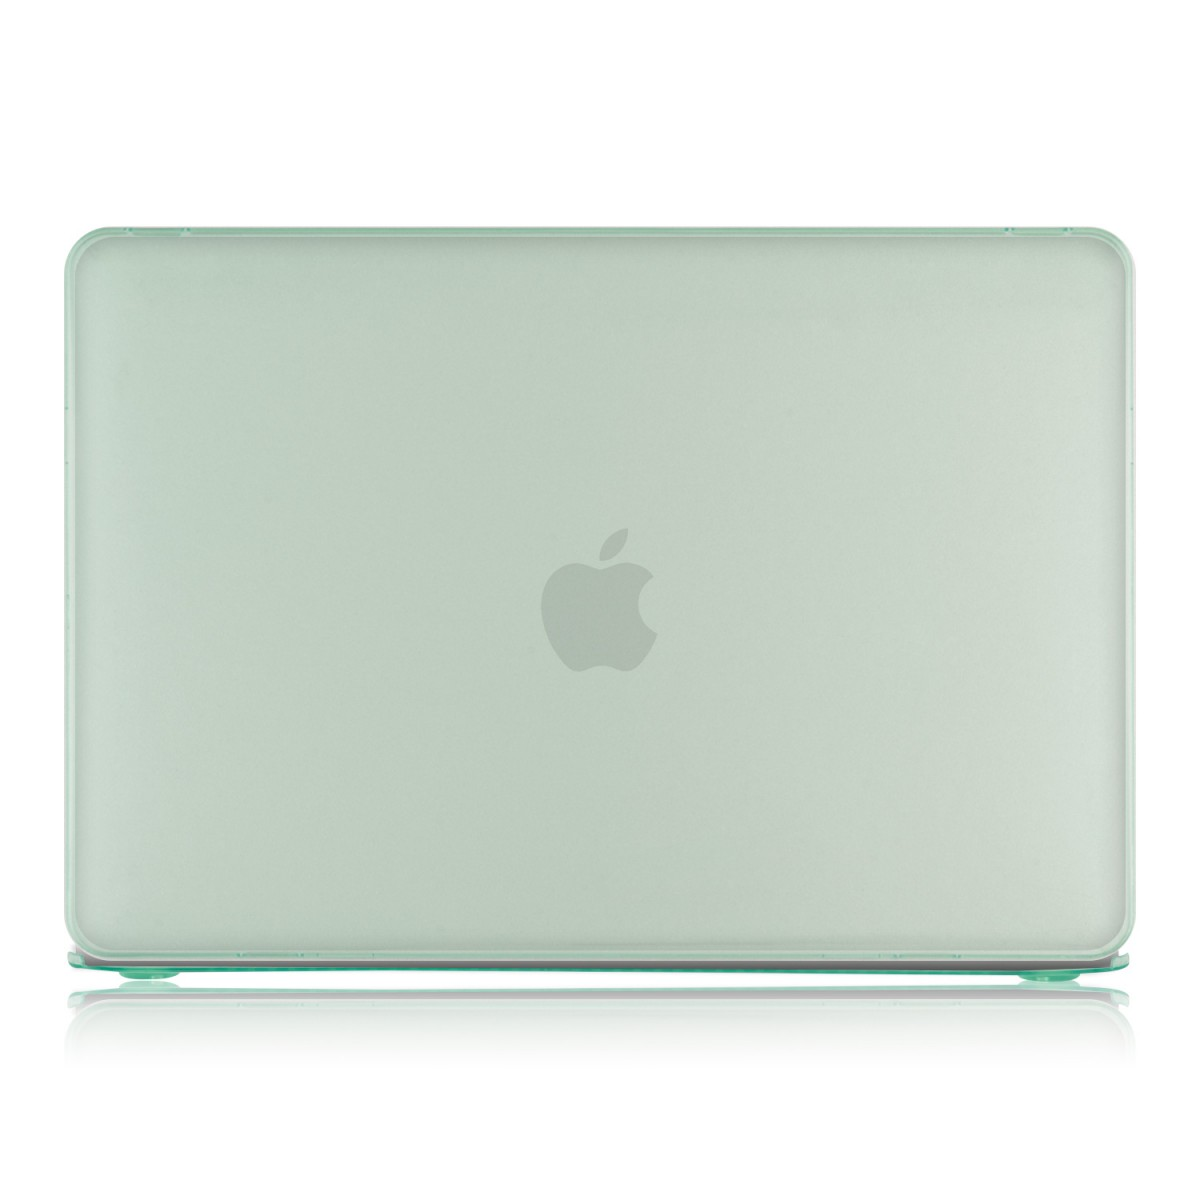 Obal Elegant Crystal pro Apple Macbook 12